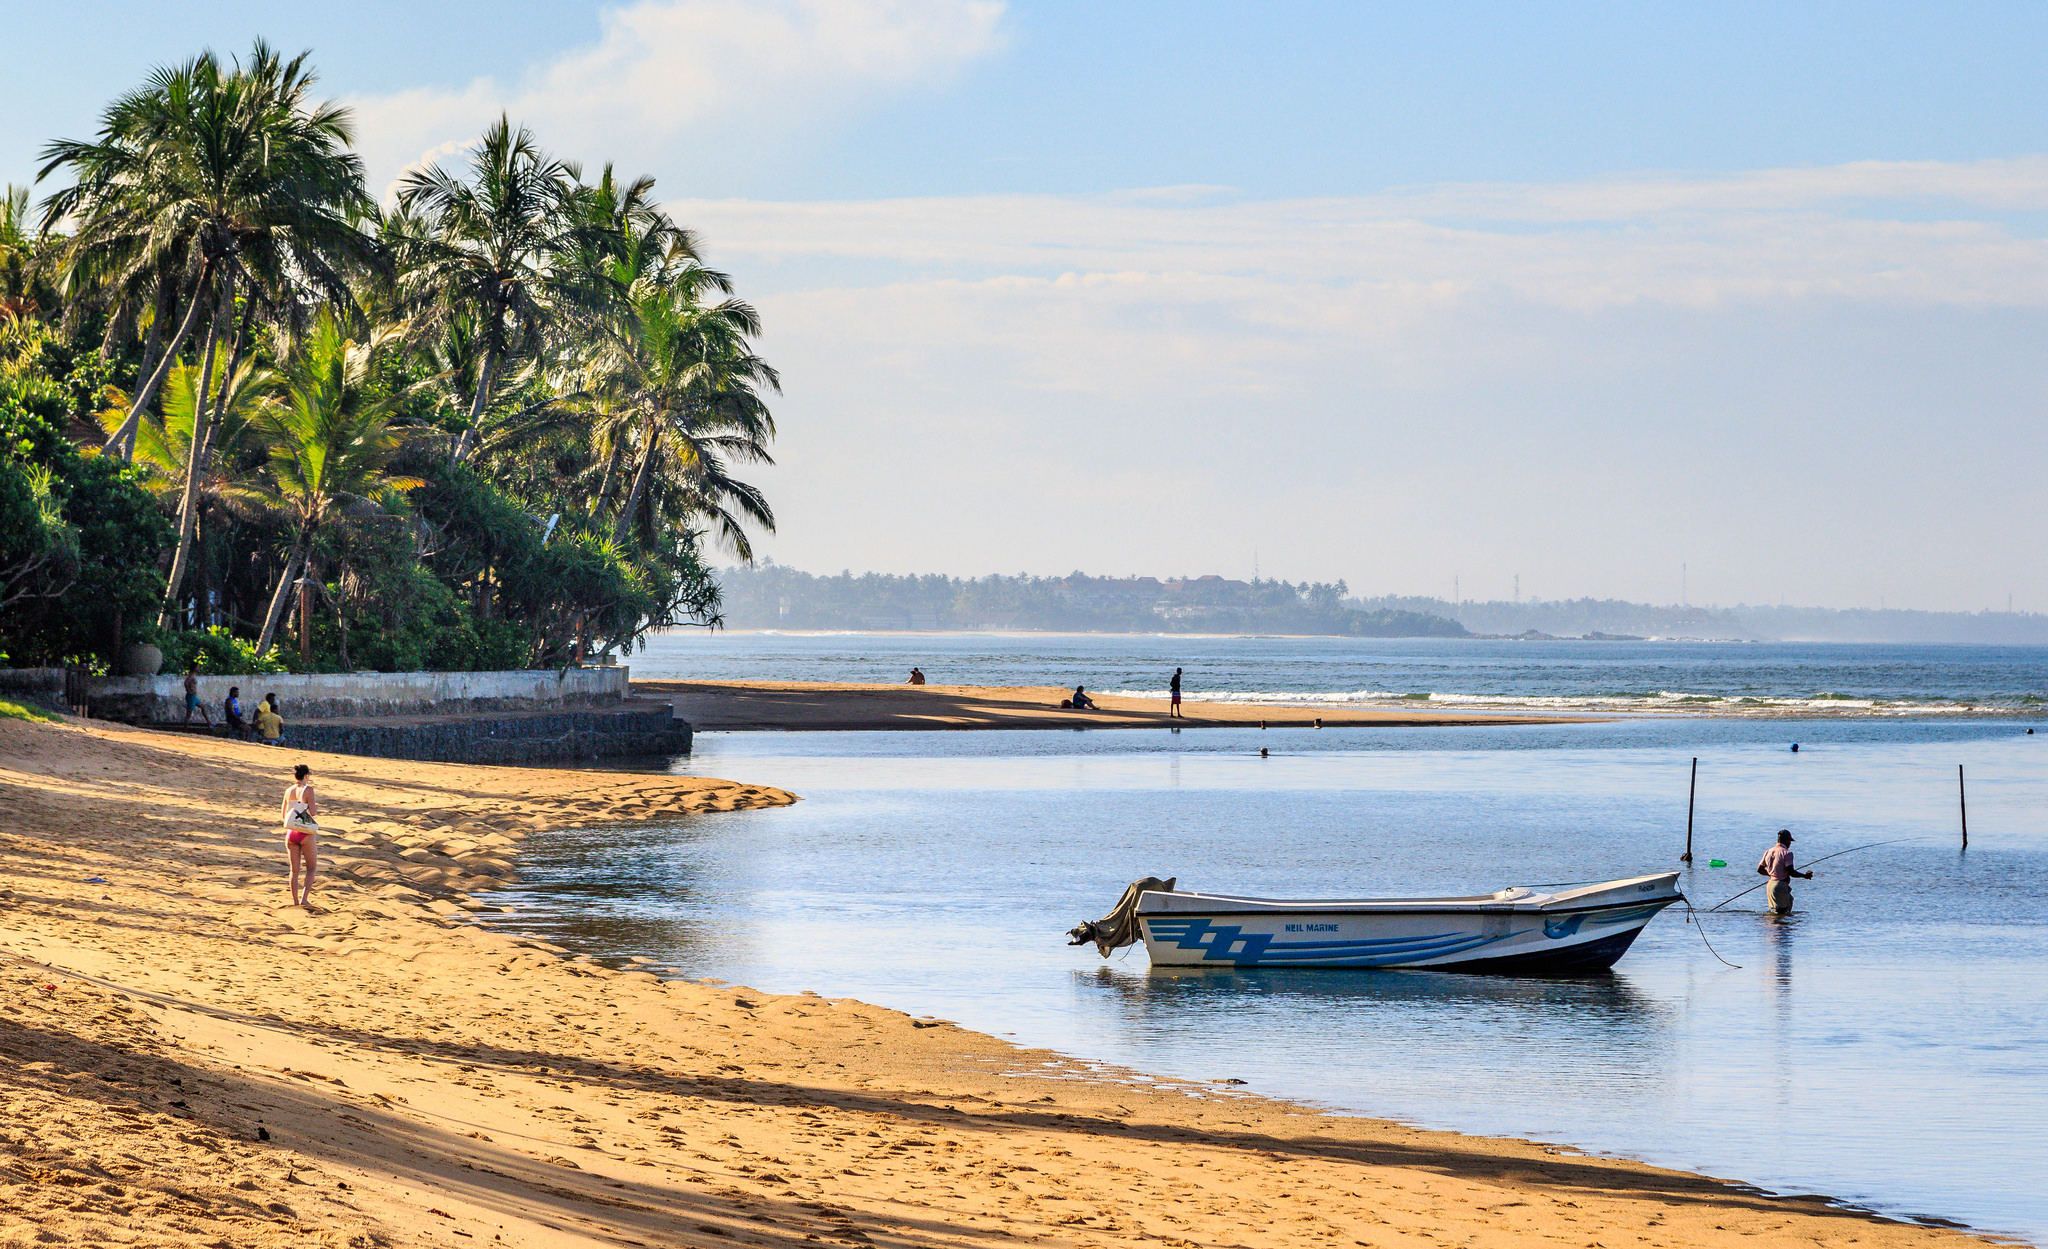 Sri Lanka is famous for its stunning coastline